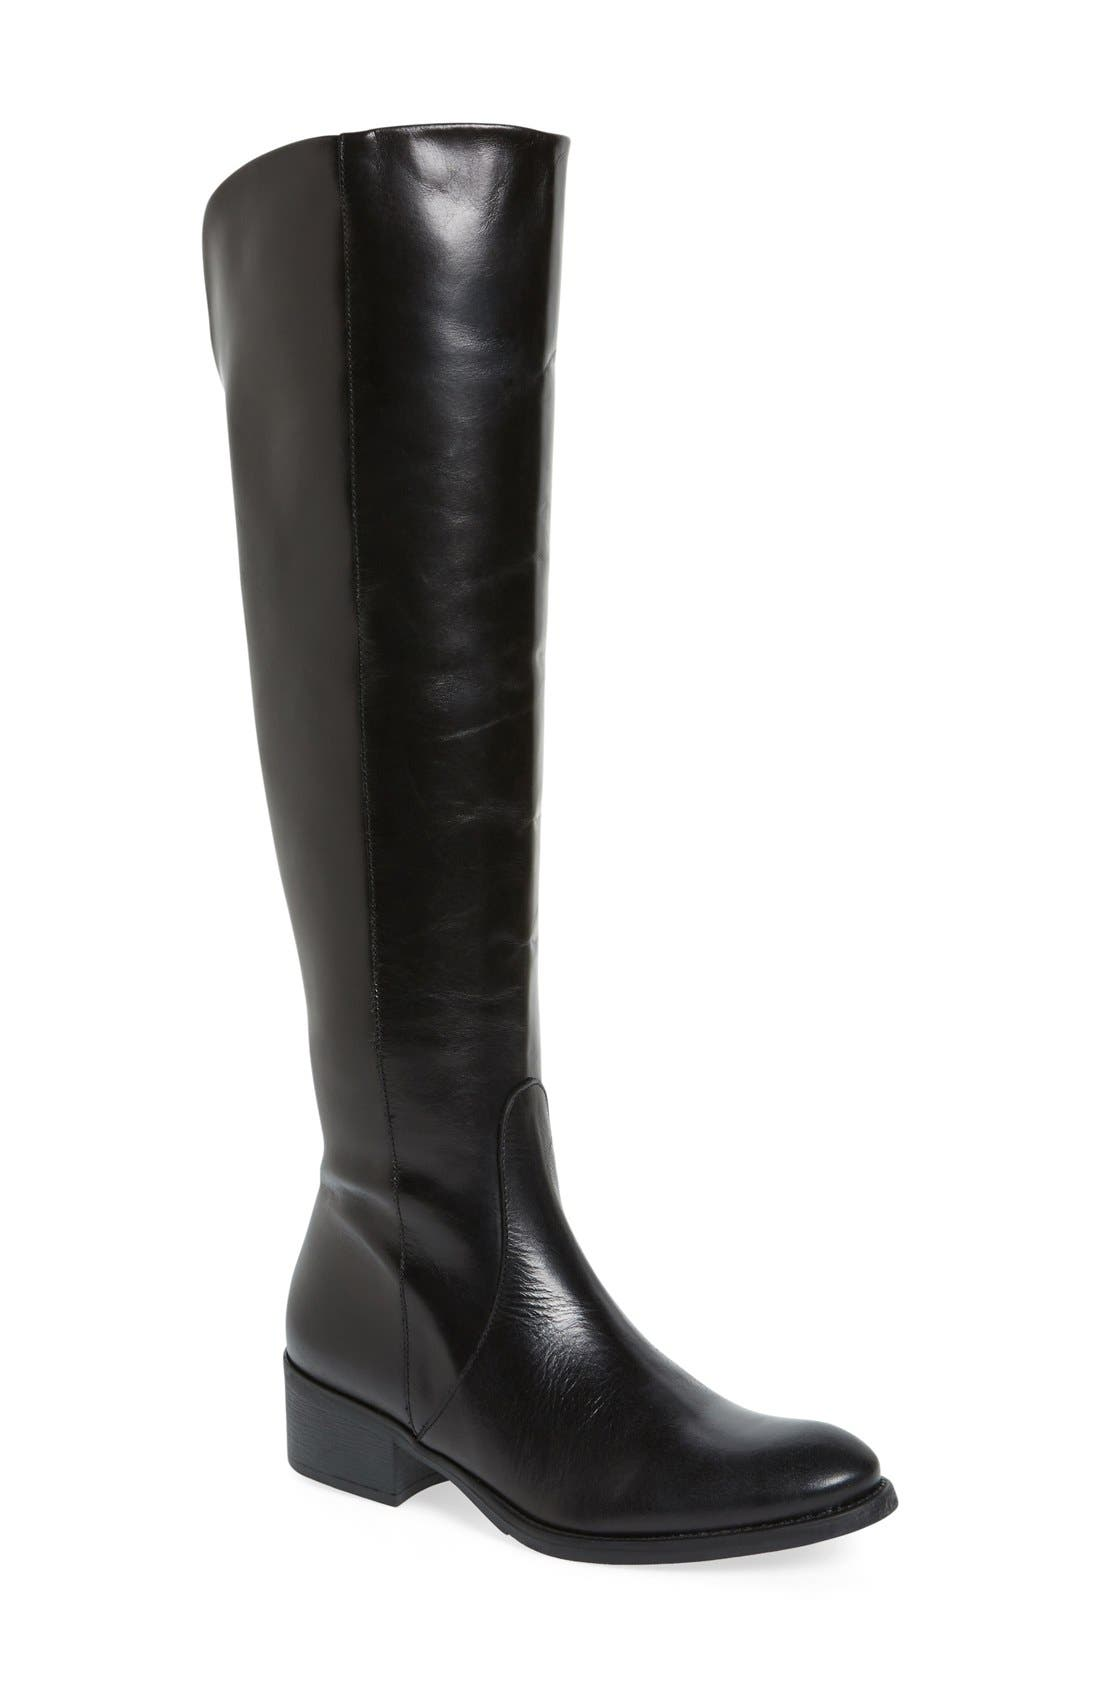 TONI PONS Tallin Over-The-Knee Riding Boot